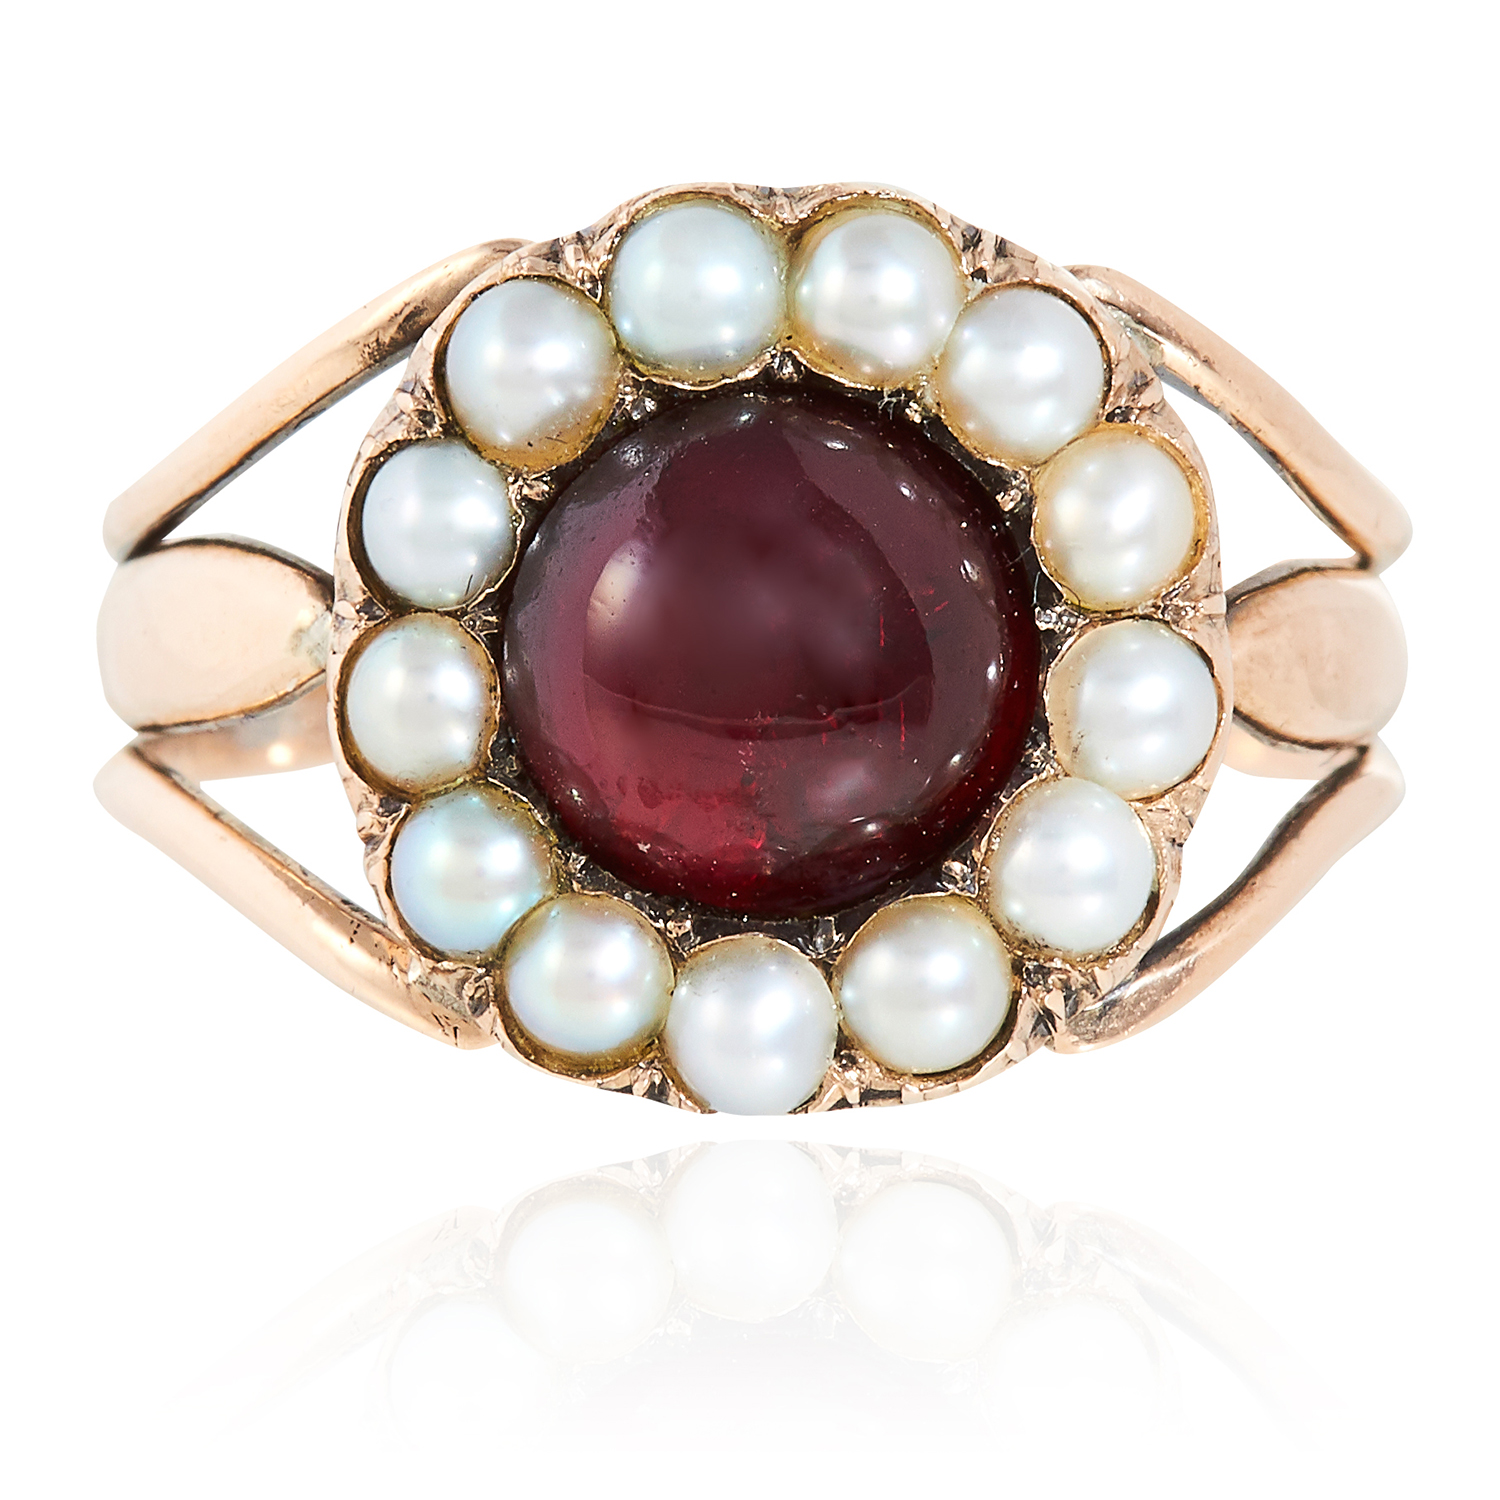 AN ANTIQUE GEORGIAN GARNET AND PEARL MOURNING RING, 1806 in high carat yellow gold, the round